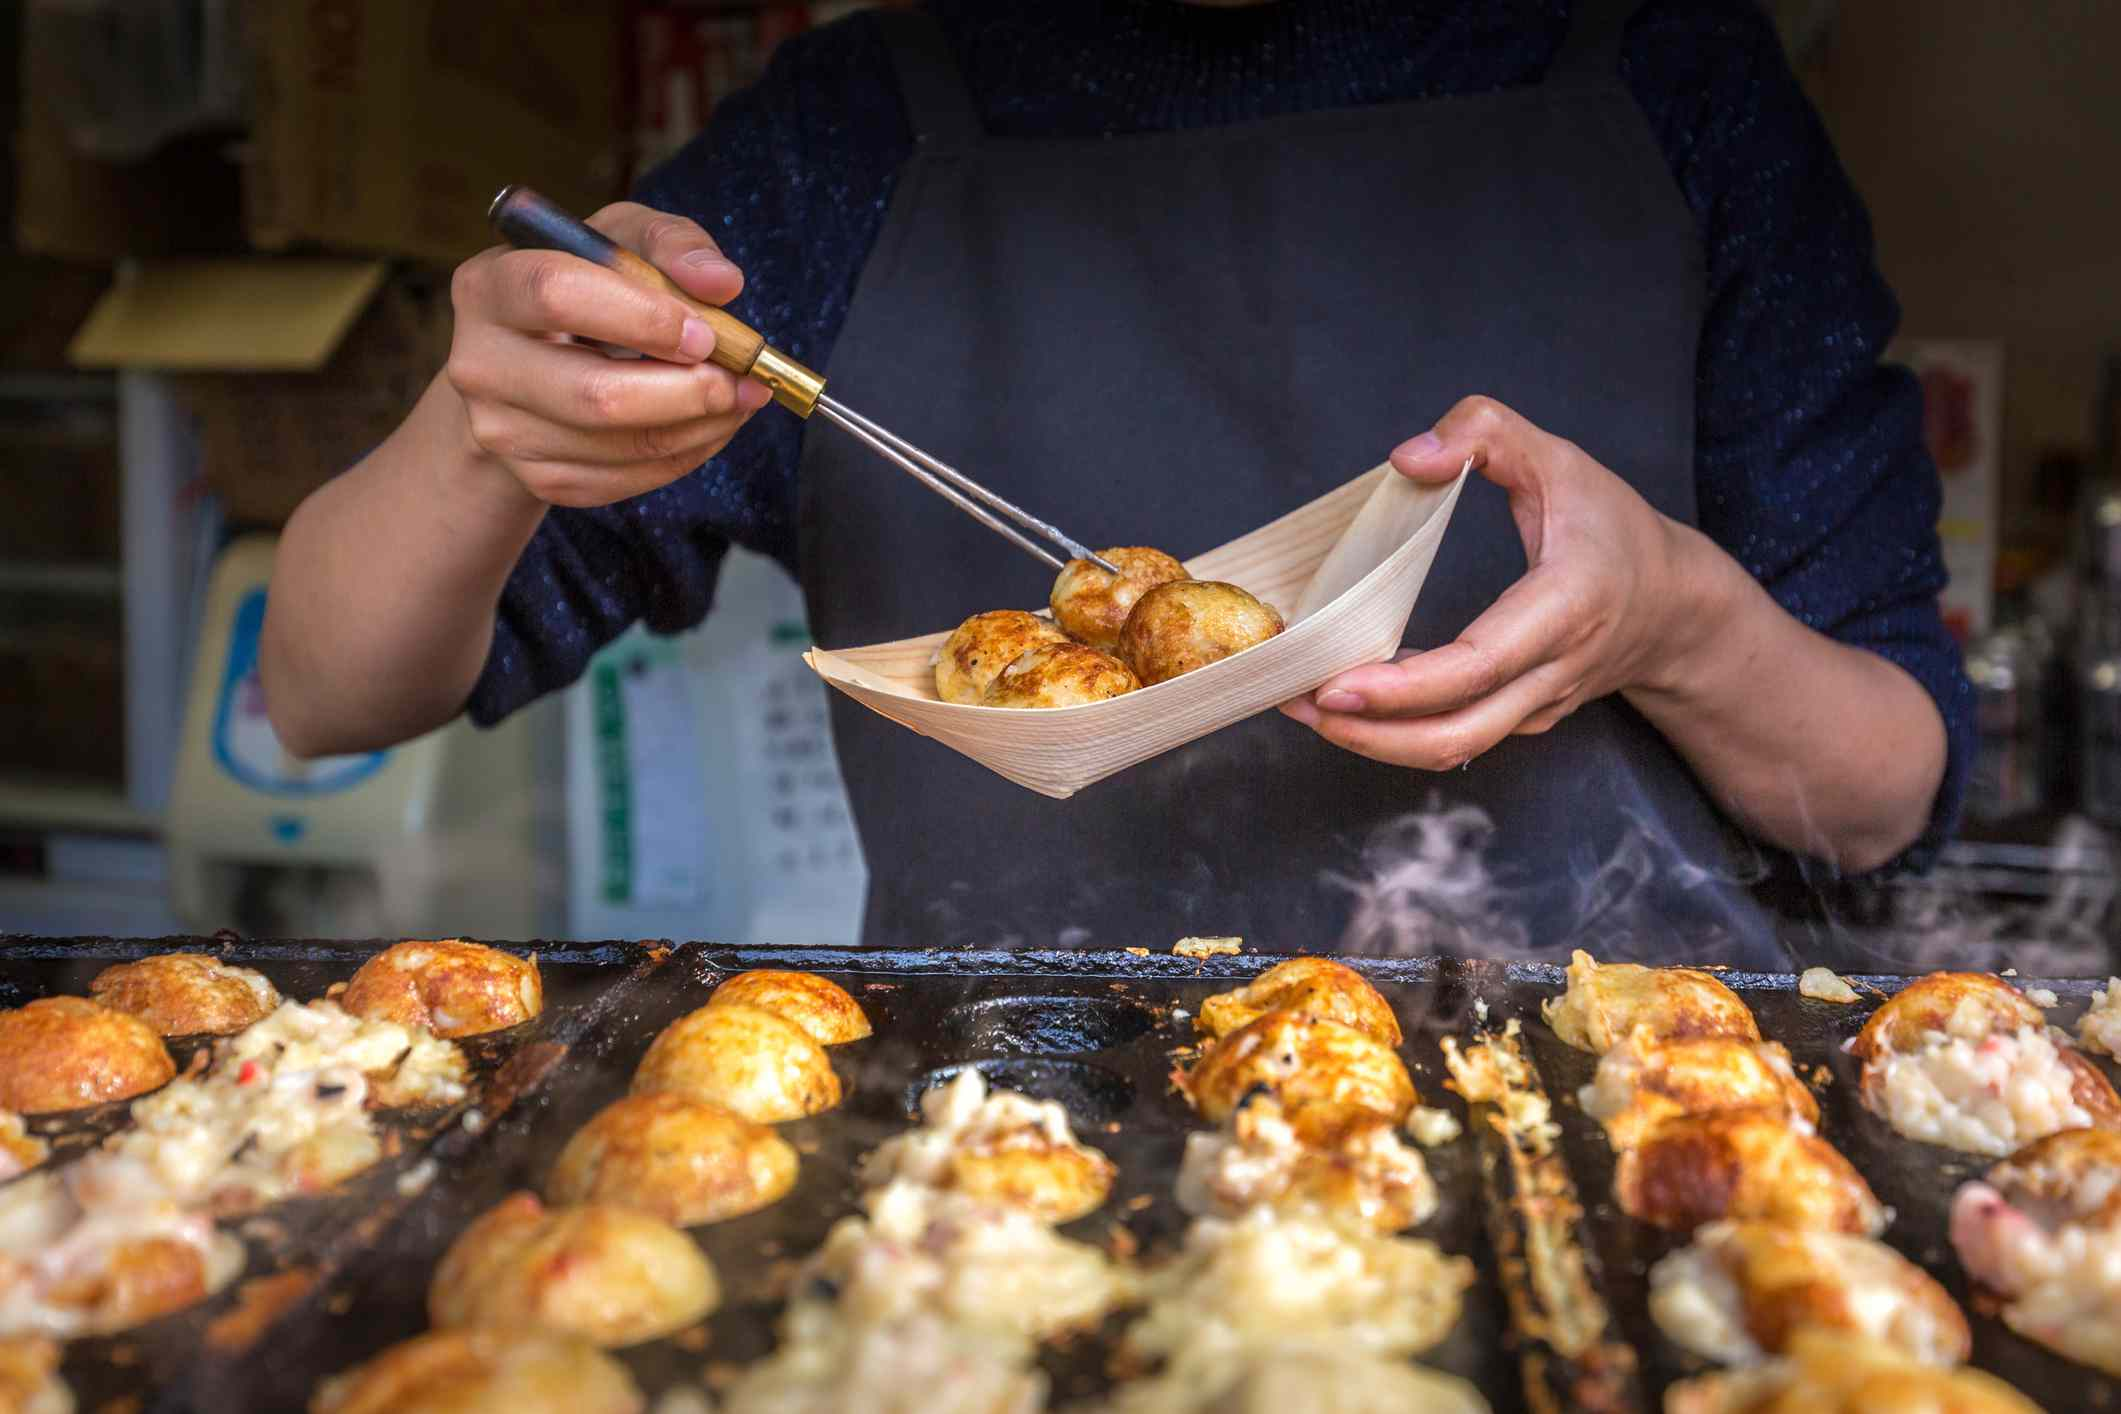 Person standing behind metal tray of cooking takoyaki while placing a takoyaki in